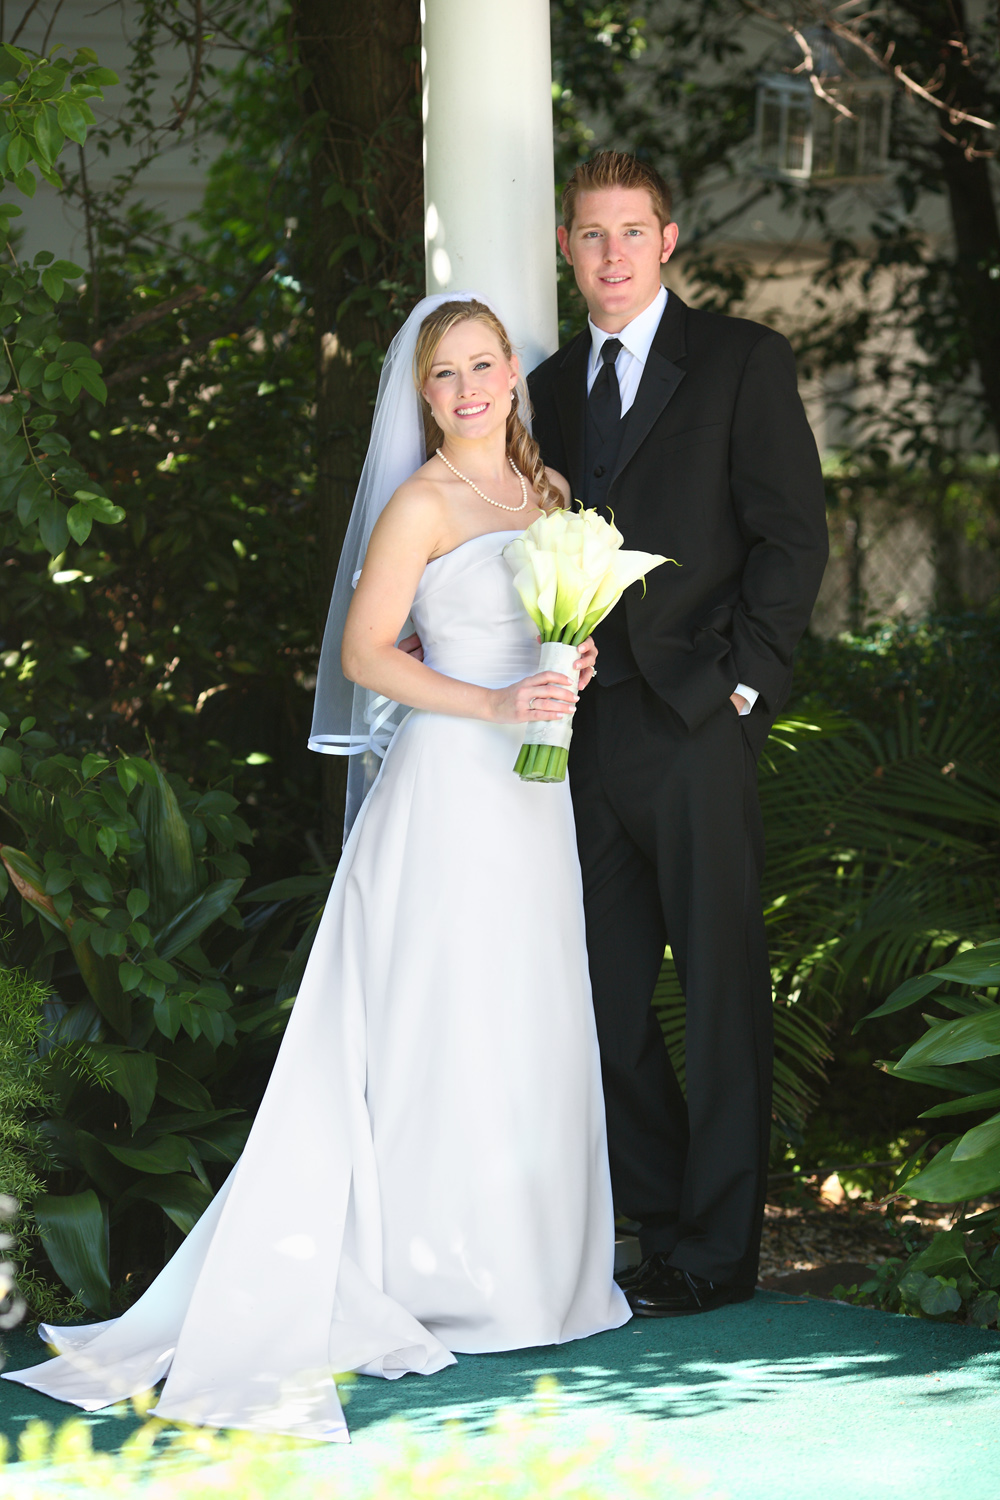 IMG_7125-weddings-neworleans.JPG